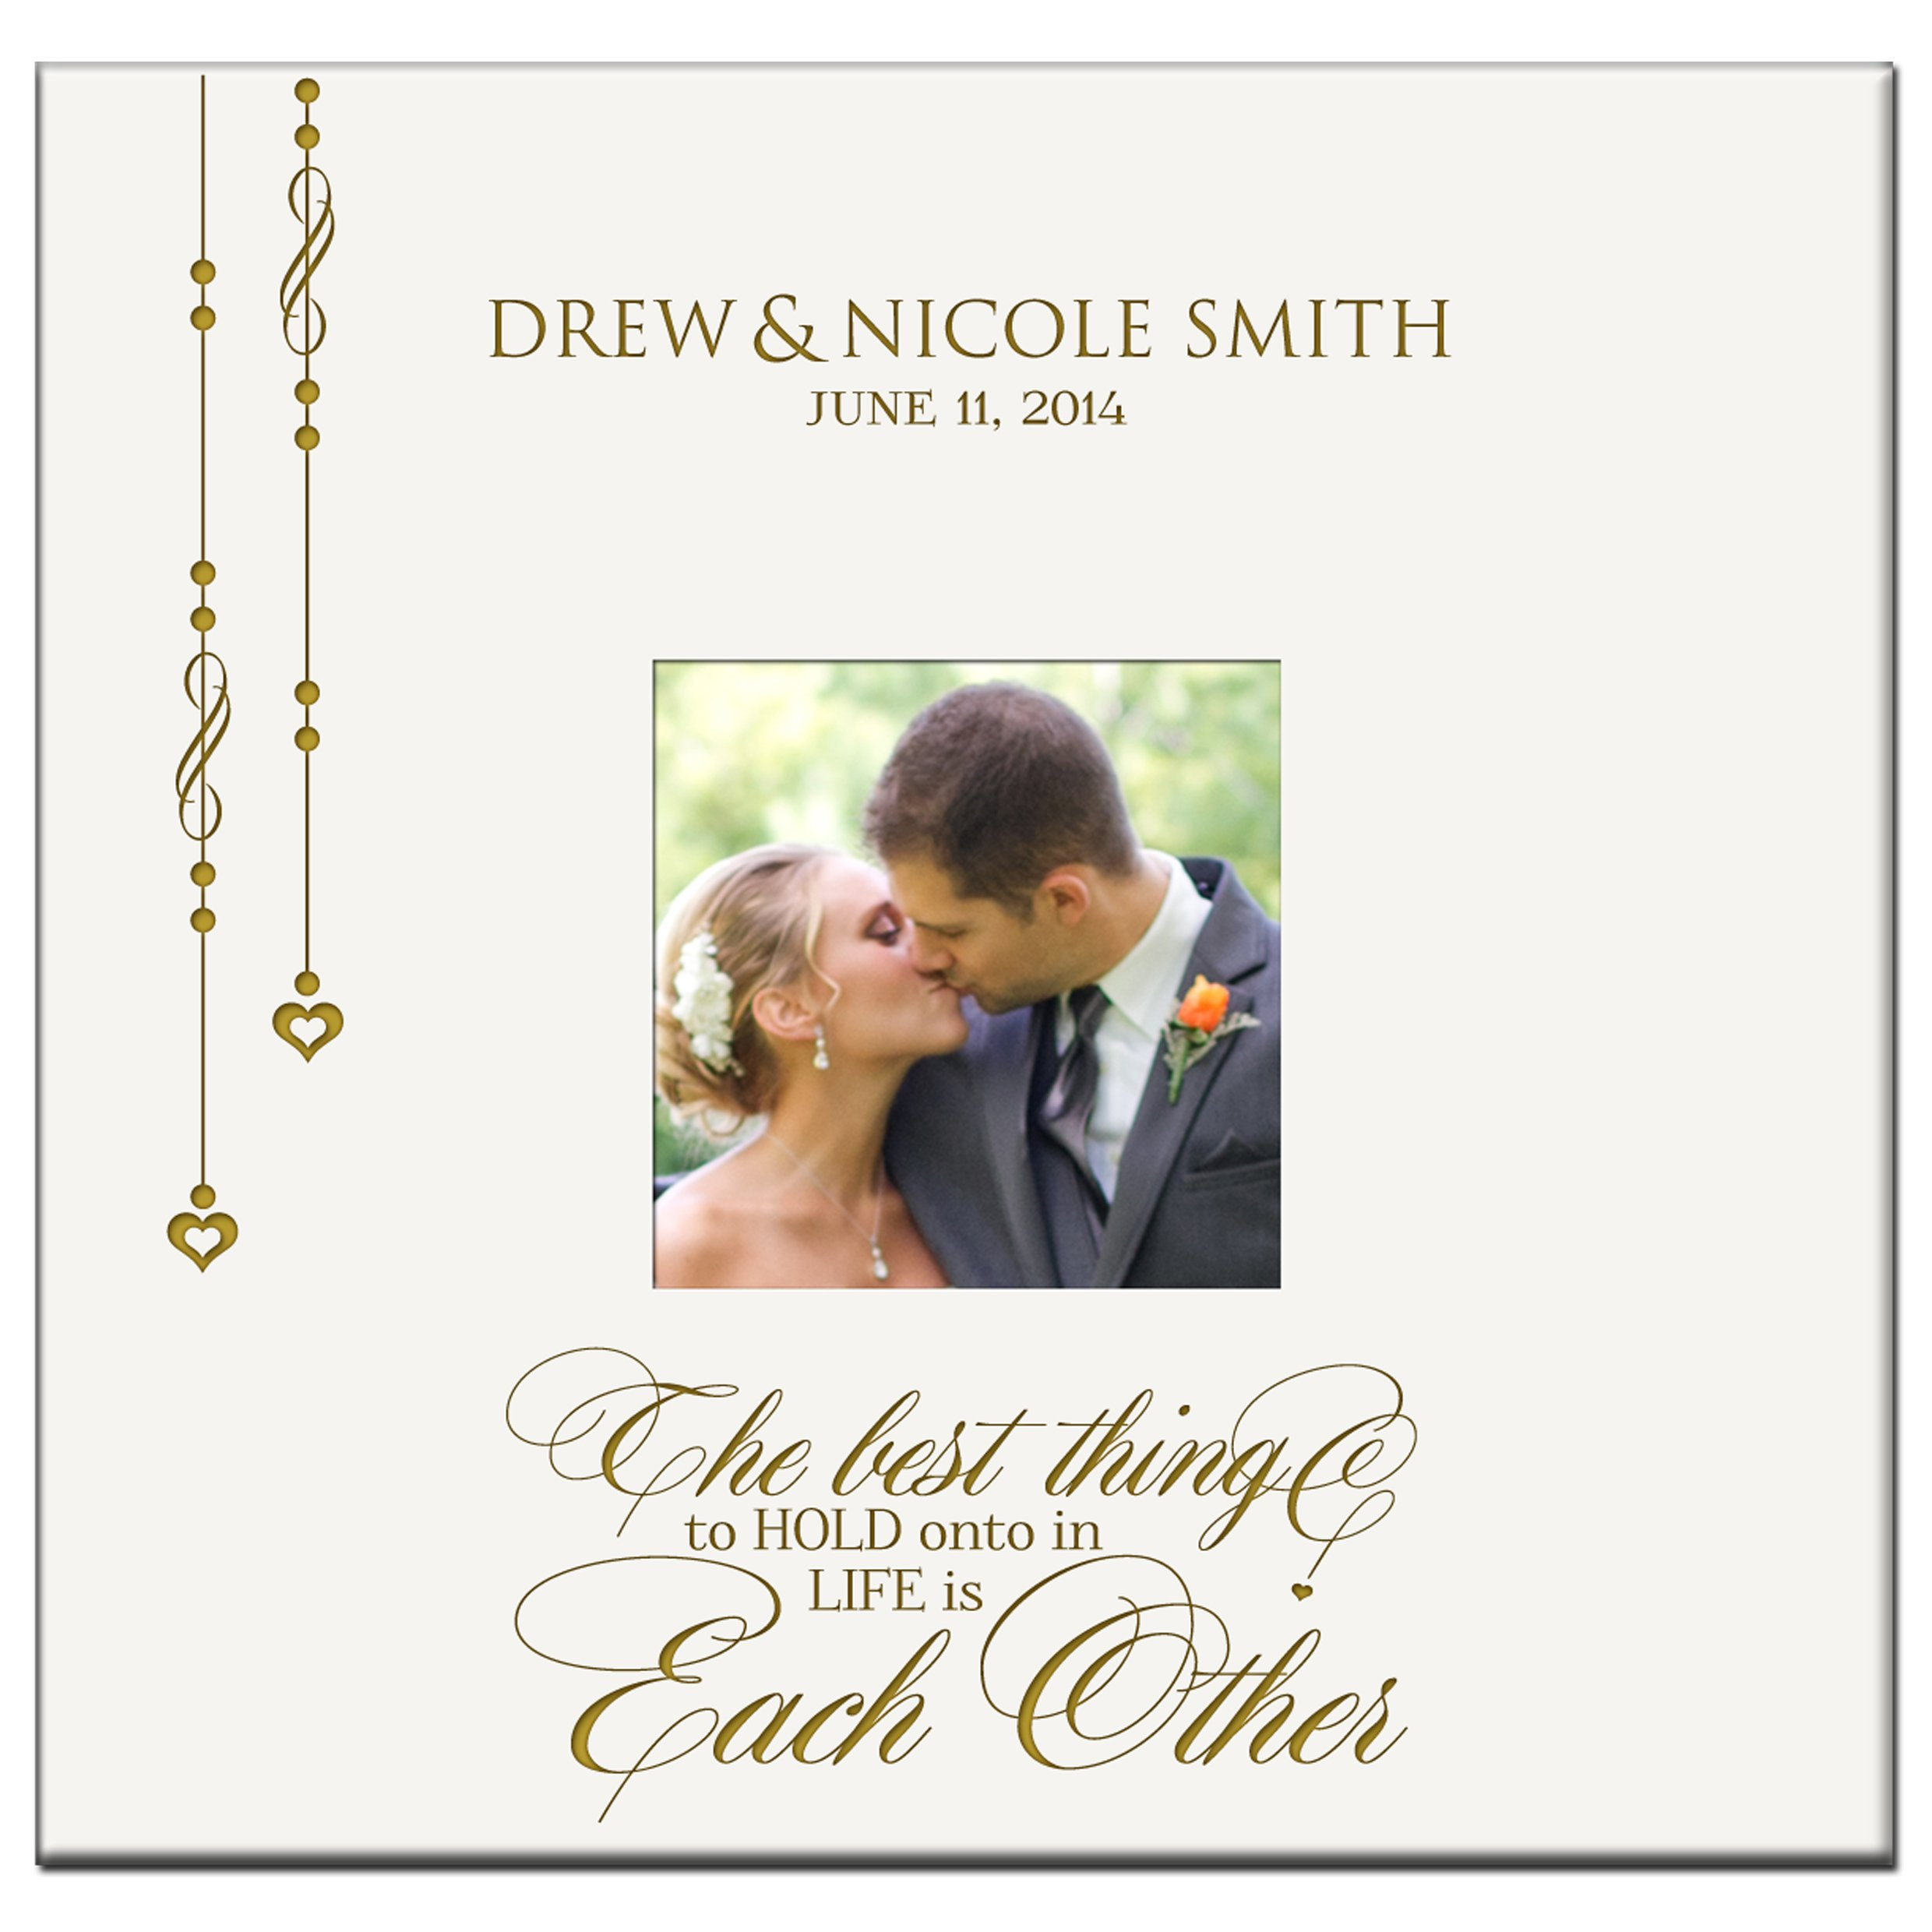 Personalized Mr & Mrs Wedding Anniversary Gifts Photo Album Custom Engraved the Best Thing to Hold Onto in Life Is Each Other Holds 200 4x6 Photos Wedding Gift Ideas By LifeSong Milestones